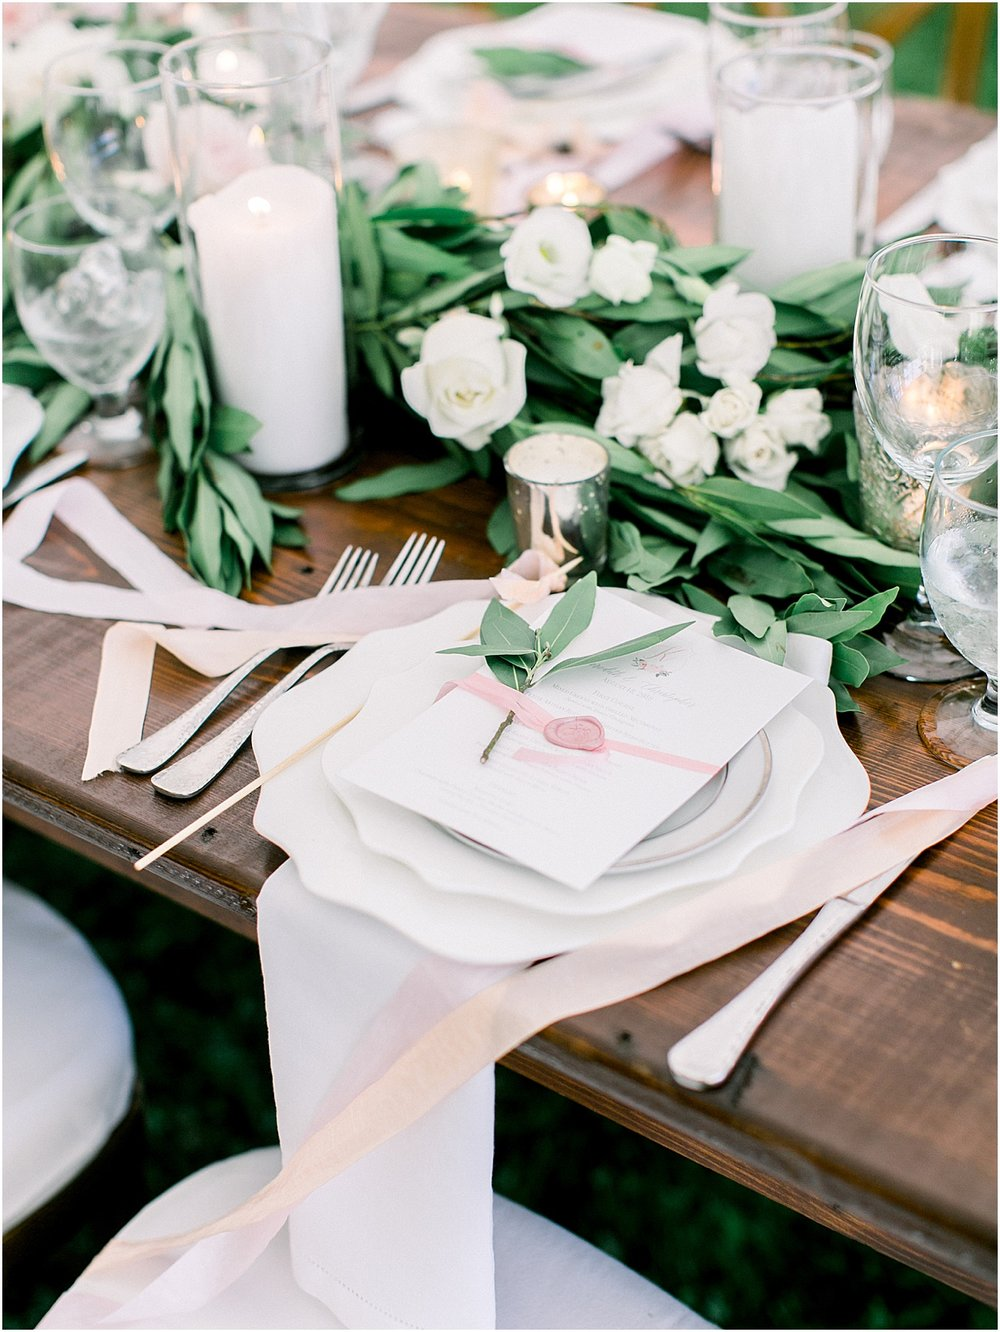 our_wedding_day_troy_NY_emma_willard_fairy_tale_royal_neutral_beauty_and_the_beast_moped_private_estate_cape_cod_boston_wedding_photographer_meredith_jane_photography_chris_kerr_photo_1987.jpg